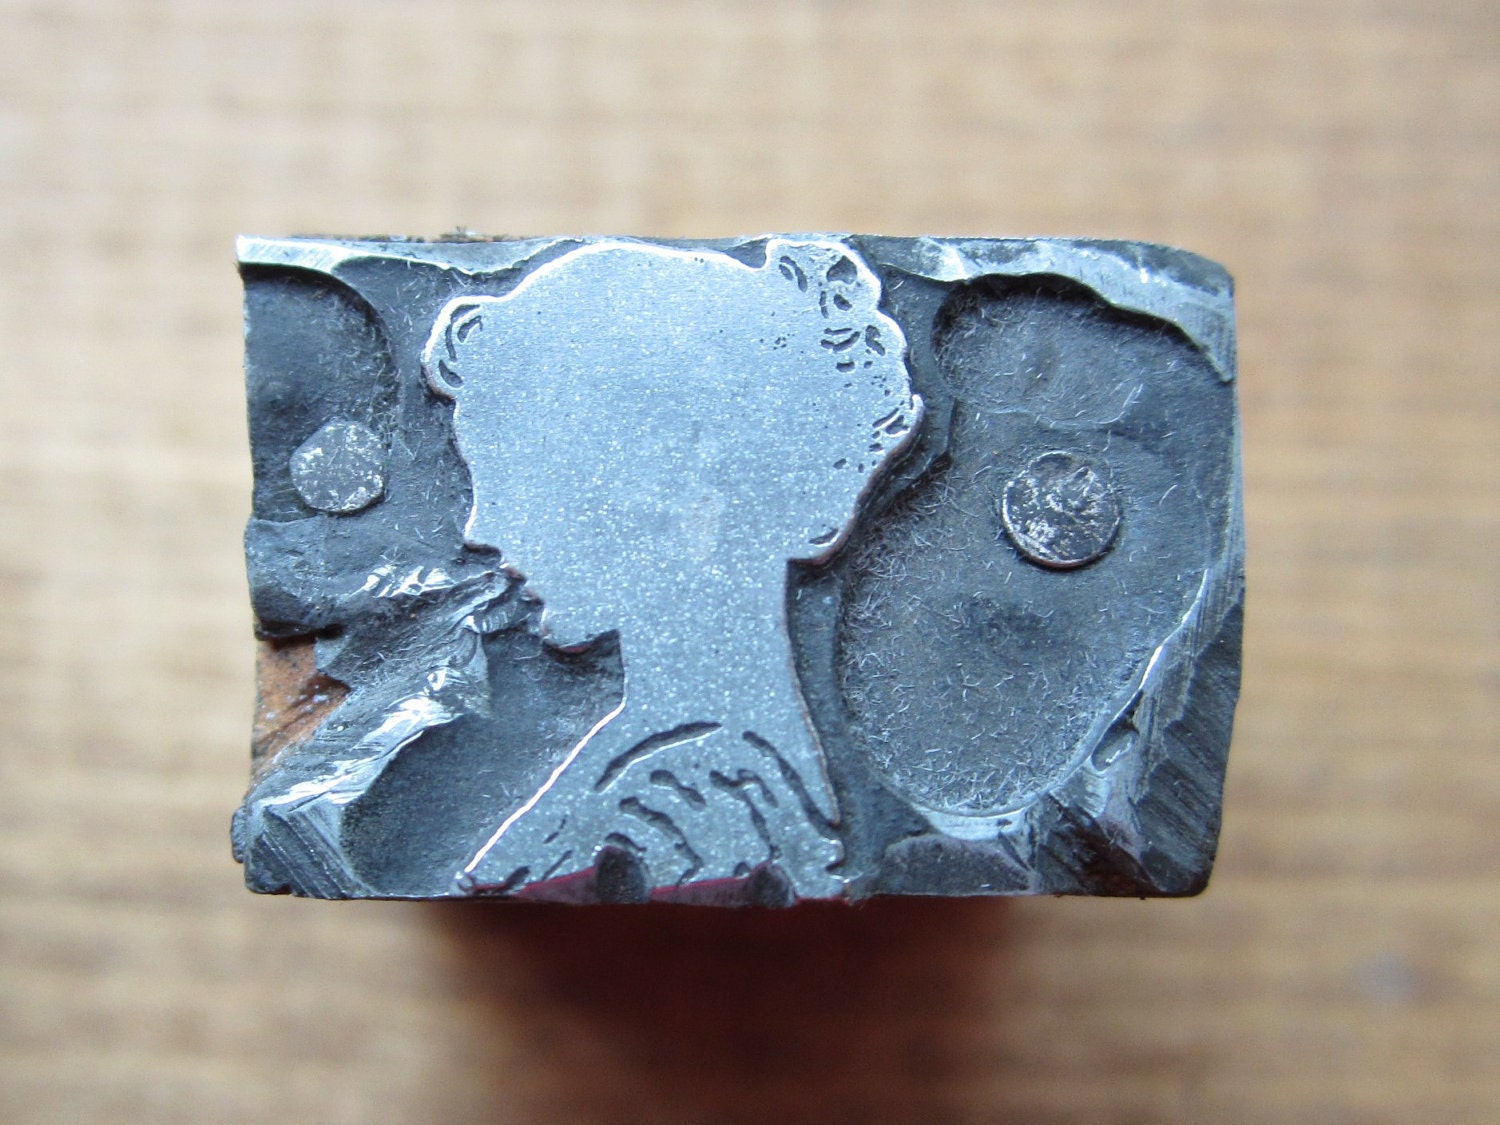 Vintage Letterpress Printers Block Young Woman or Girl Silhouette - PreserveCottage